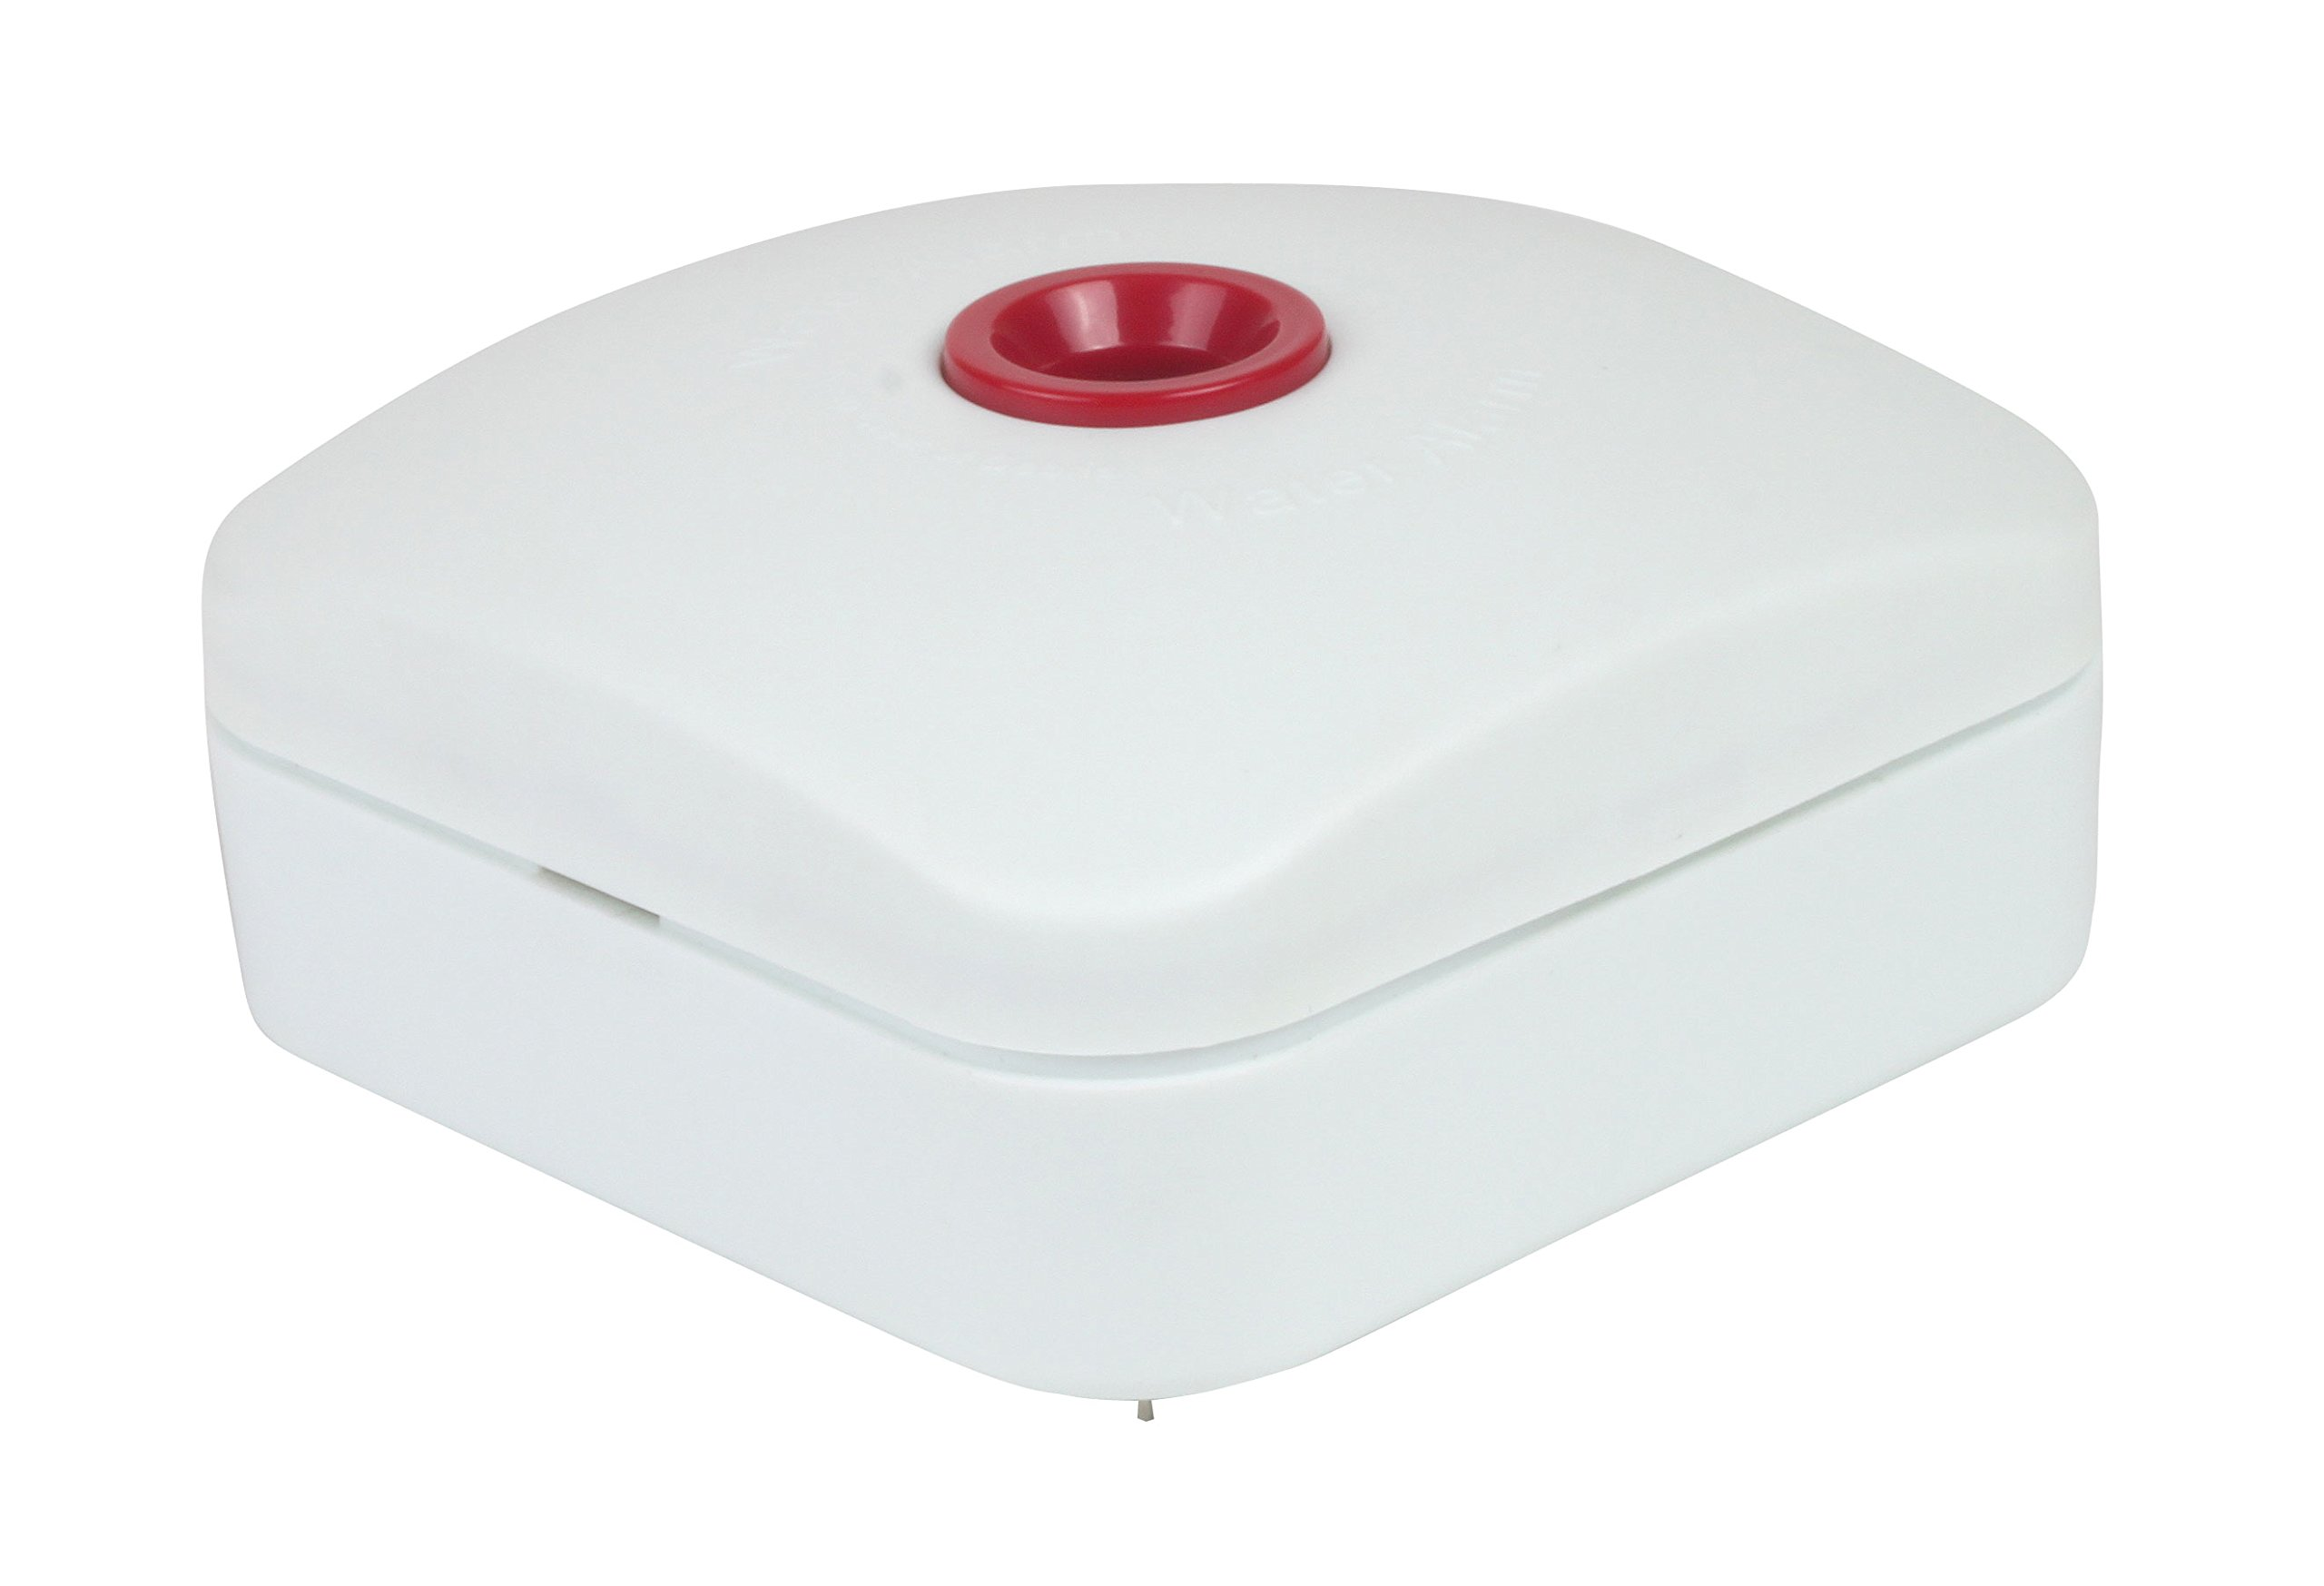 Gizmode Innovations GIWA02 Innovations Water Alarm by Gizmode Innovations